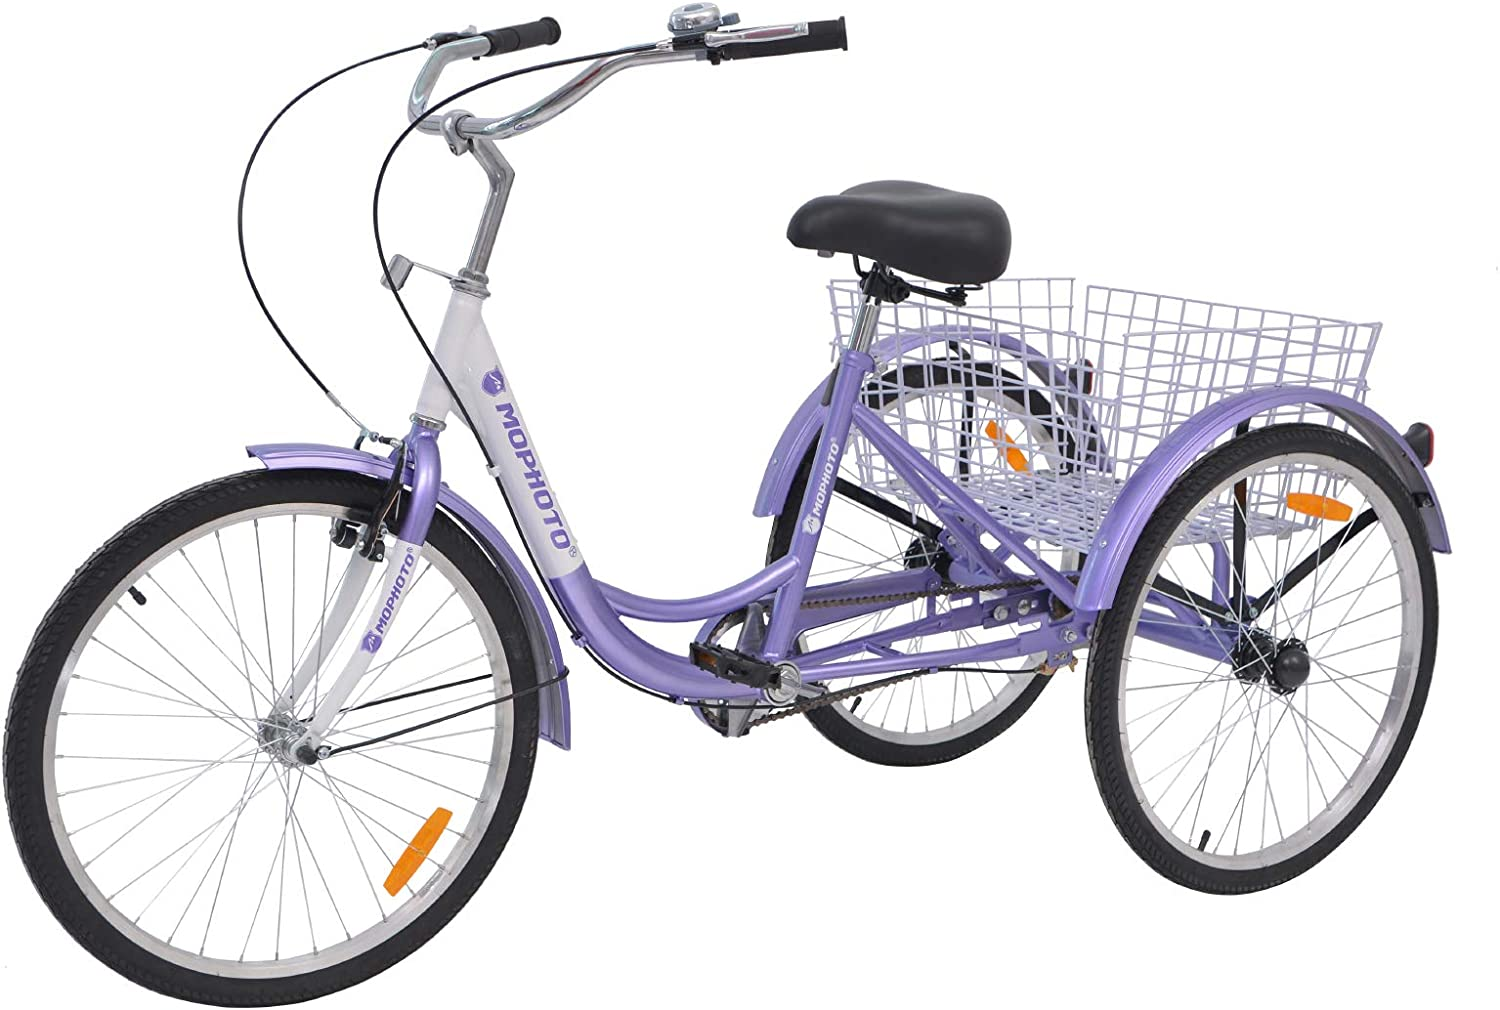 MOPHOTO Adult Tricycle 1 7 Speed Three Wheel Bikes for Adults, Meridian 26 Adult Tricycle for Men Women Seniors